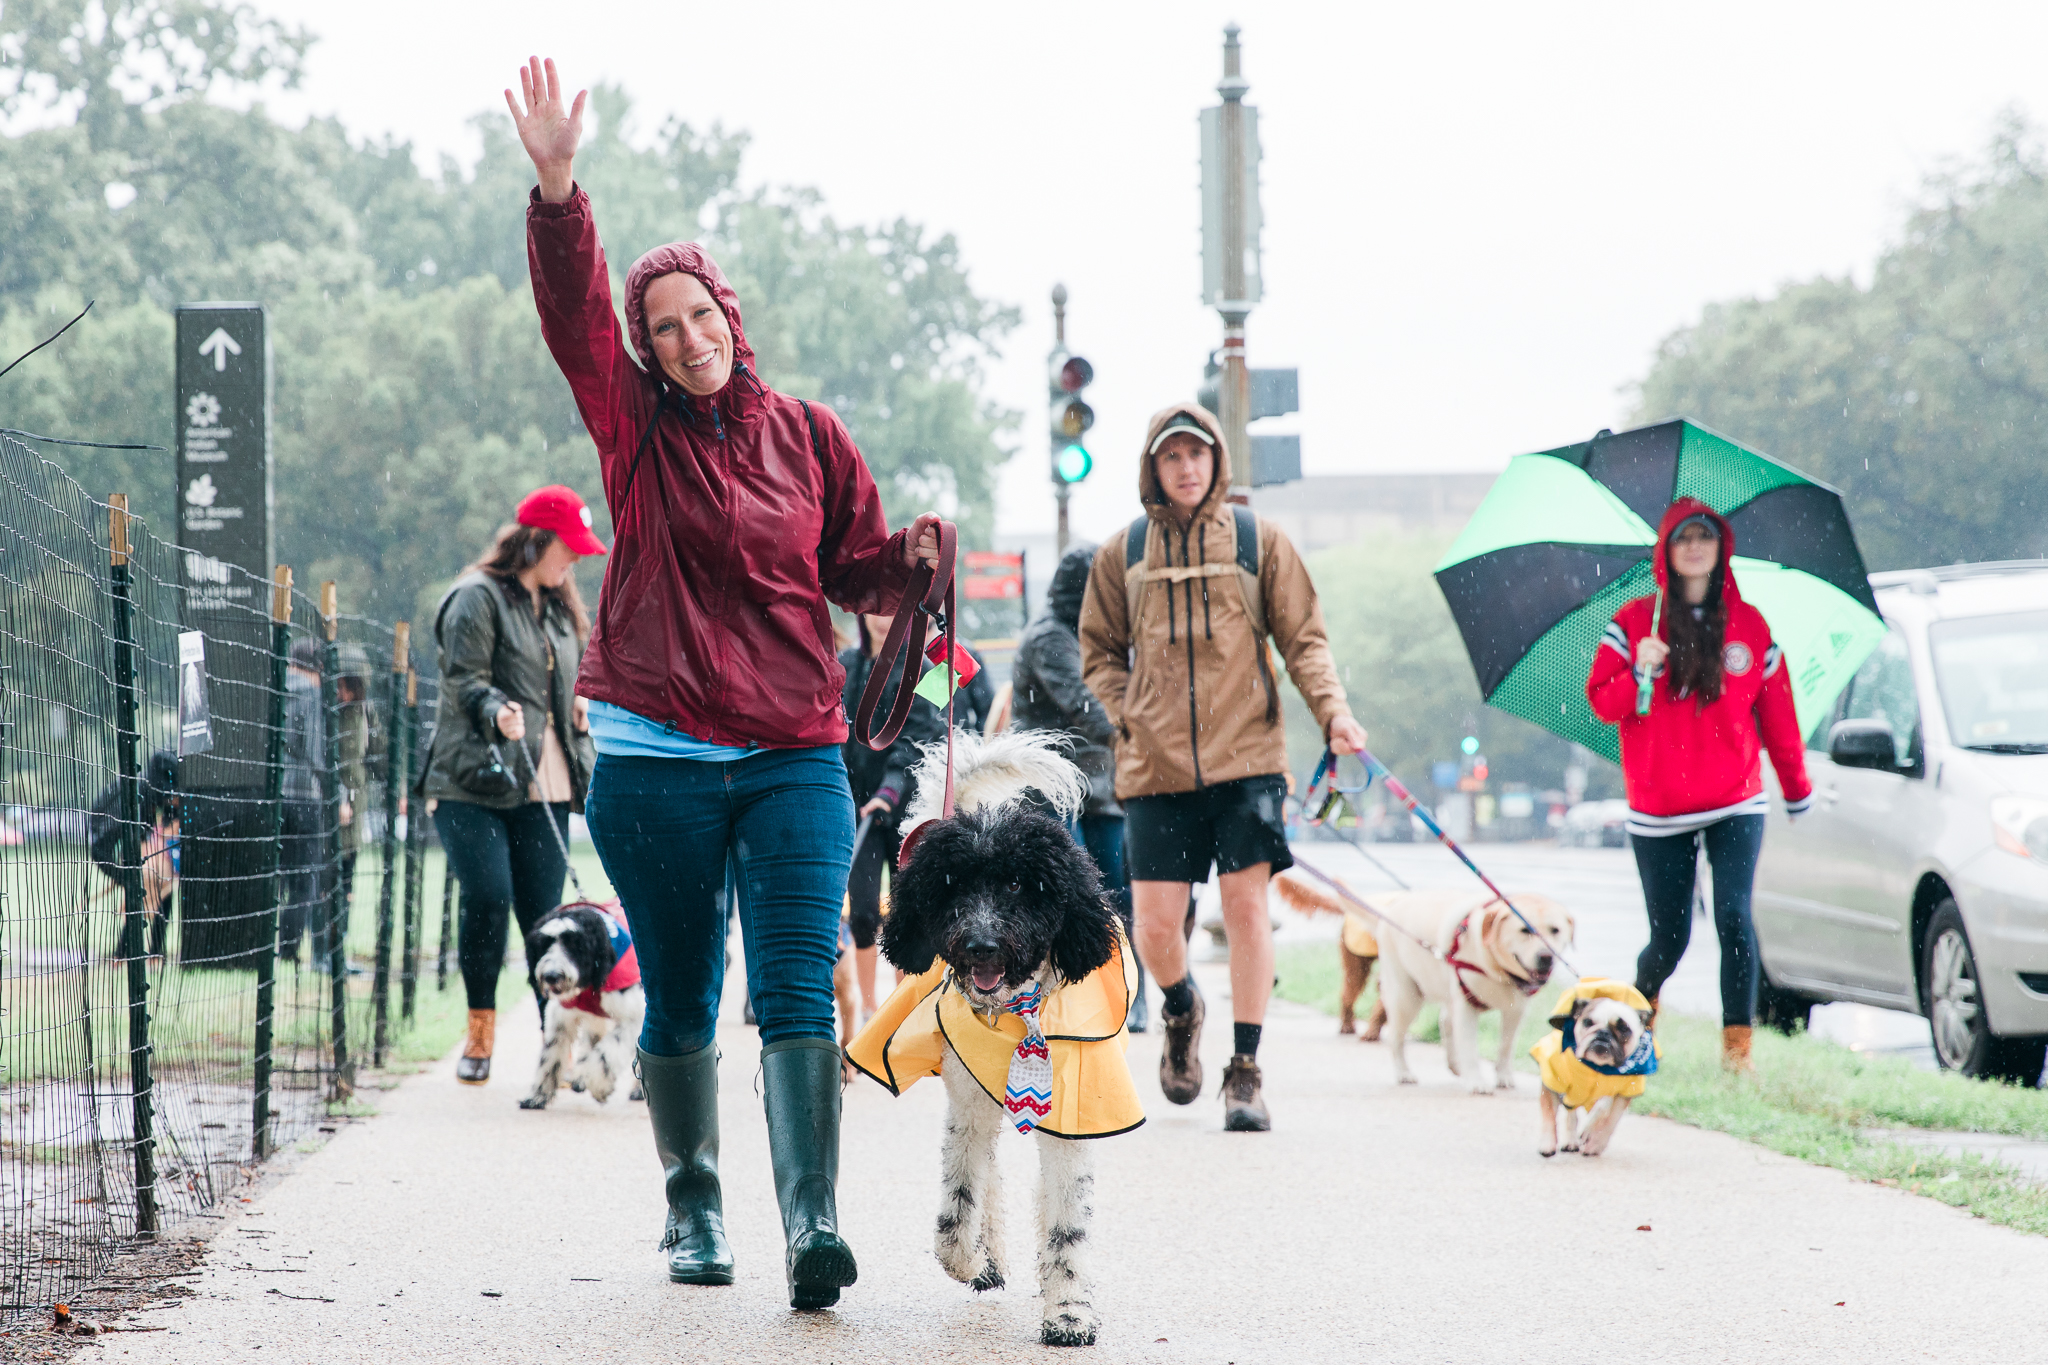 "Despite the never-ending rain, the second annual Bipawtisan March brought dogs from both sides of the aisle together to march from Capitol Hill to 'yappy hour' at Wunder Garten for beer and pup-friendly treats. The event, organized by a female-run non-profit WeTheDogsDC, had approximately 100 participants and raised $10,000 for more than 30 rescue organizations around town. According to the organizers, ""the mission of the Bipawtisan March is to show that no matter what side of the aisle you stand on, the love we have for our pets transcends all political agendas and is a cause that we can all support."" Attendees were encouraged to don costumes showing what they were marching for and to carry family-friendly signs. 100 percent of the event proceeds were donated to rescue organizations.{ }(Image: Aaron Wong Photography)"